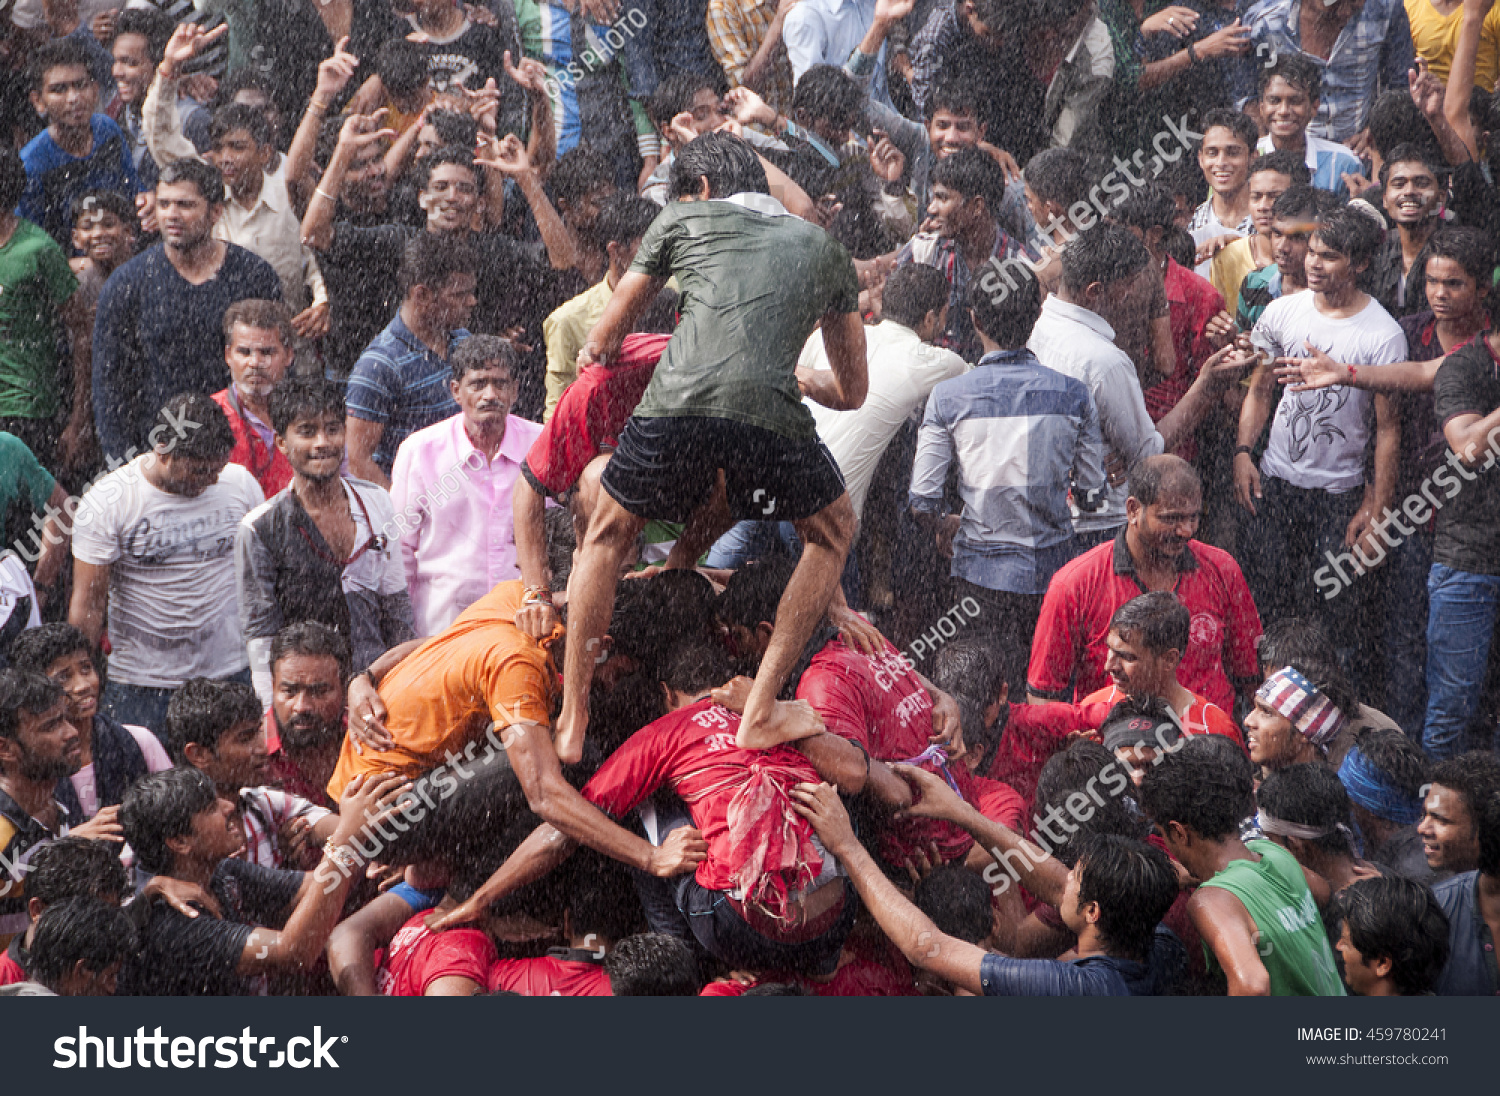 amravati guys Amravati amravati (also known as amrawati or amraoti) is a city in the state of maharashtra in india it is believed to be the city of lord indra, the king of all gods the city boasts of historical.